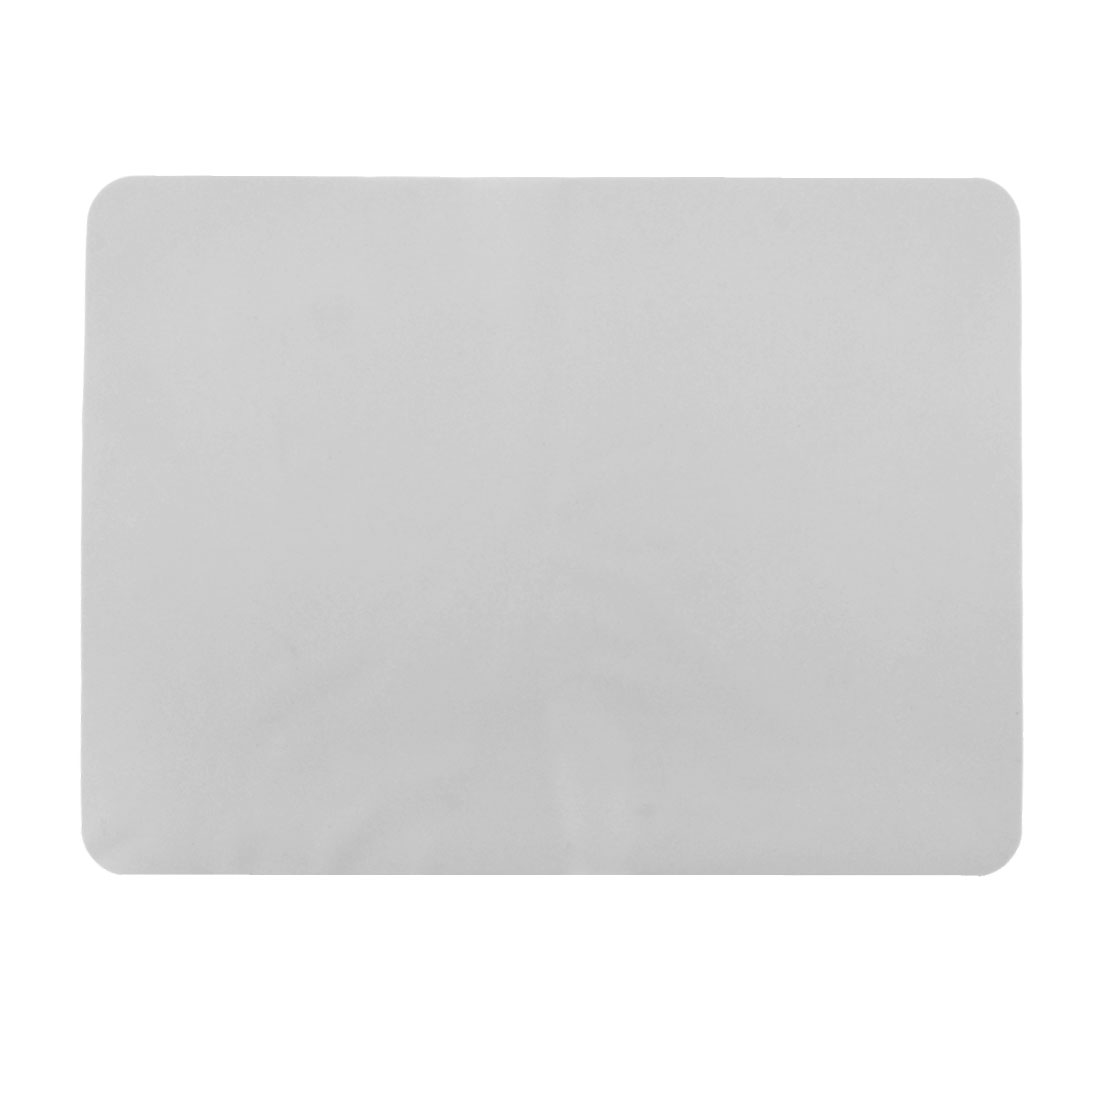 Western Restaurant Silicone Table Heat Resistant Mat Cushion Placemat Clear White